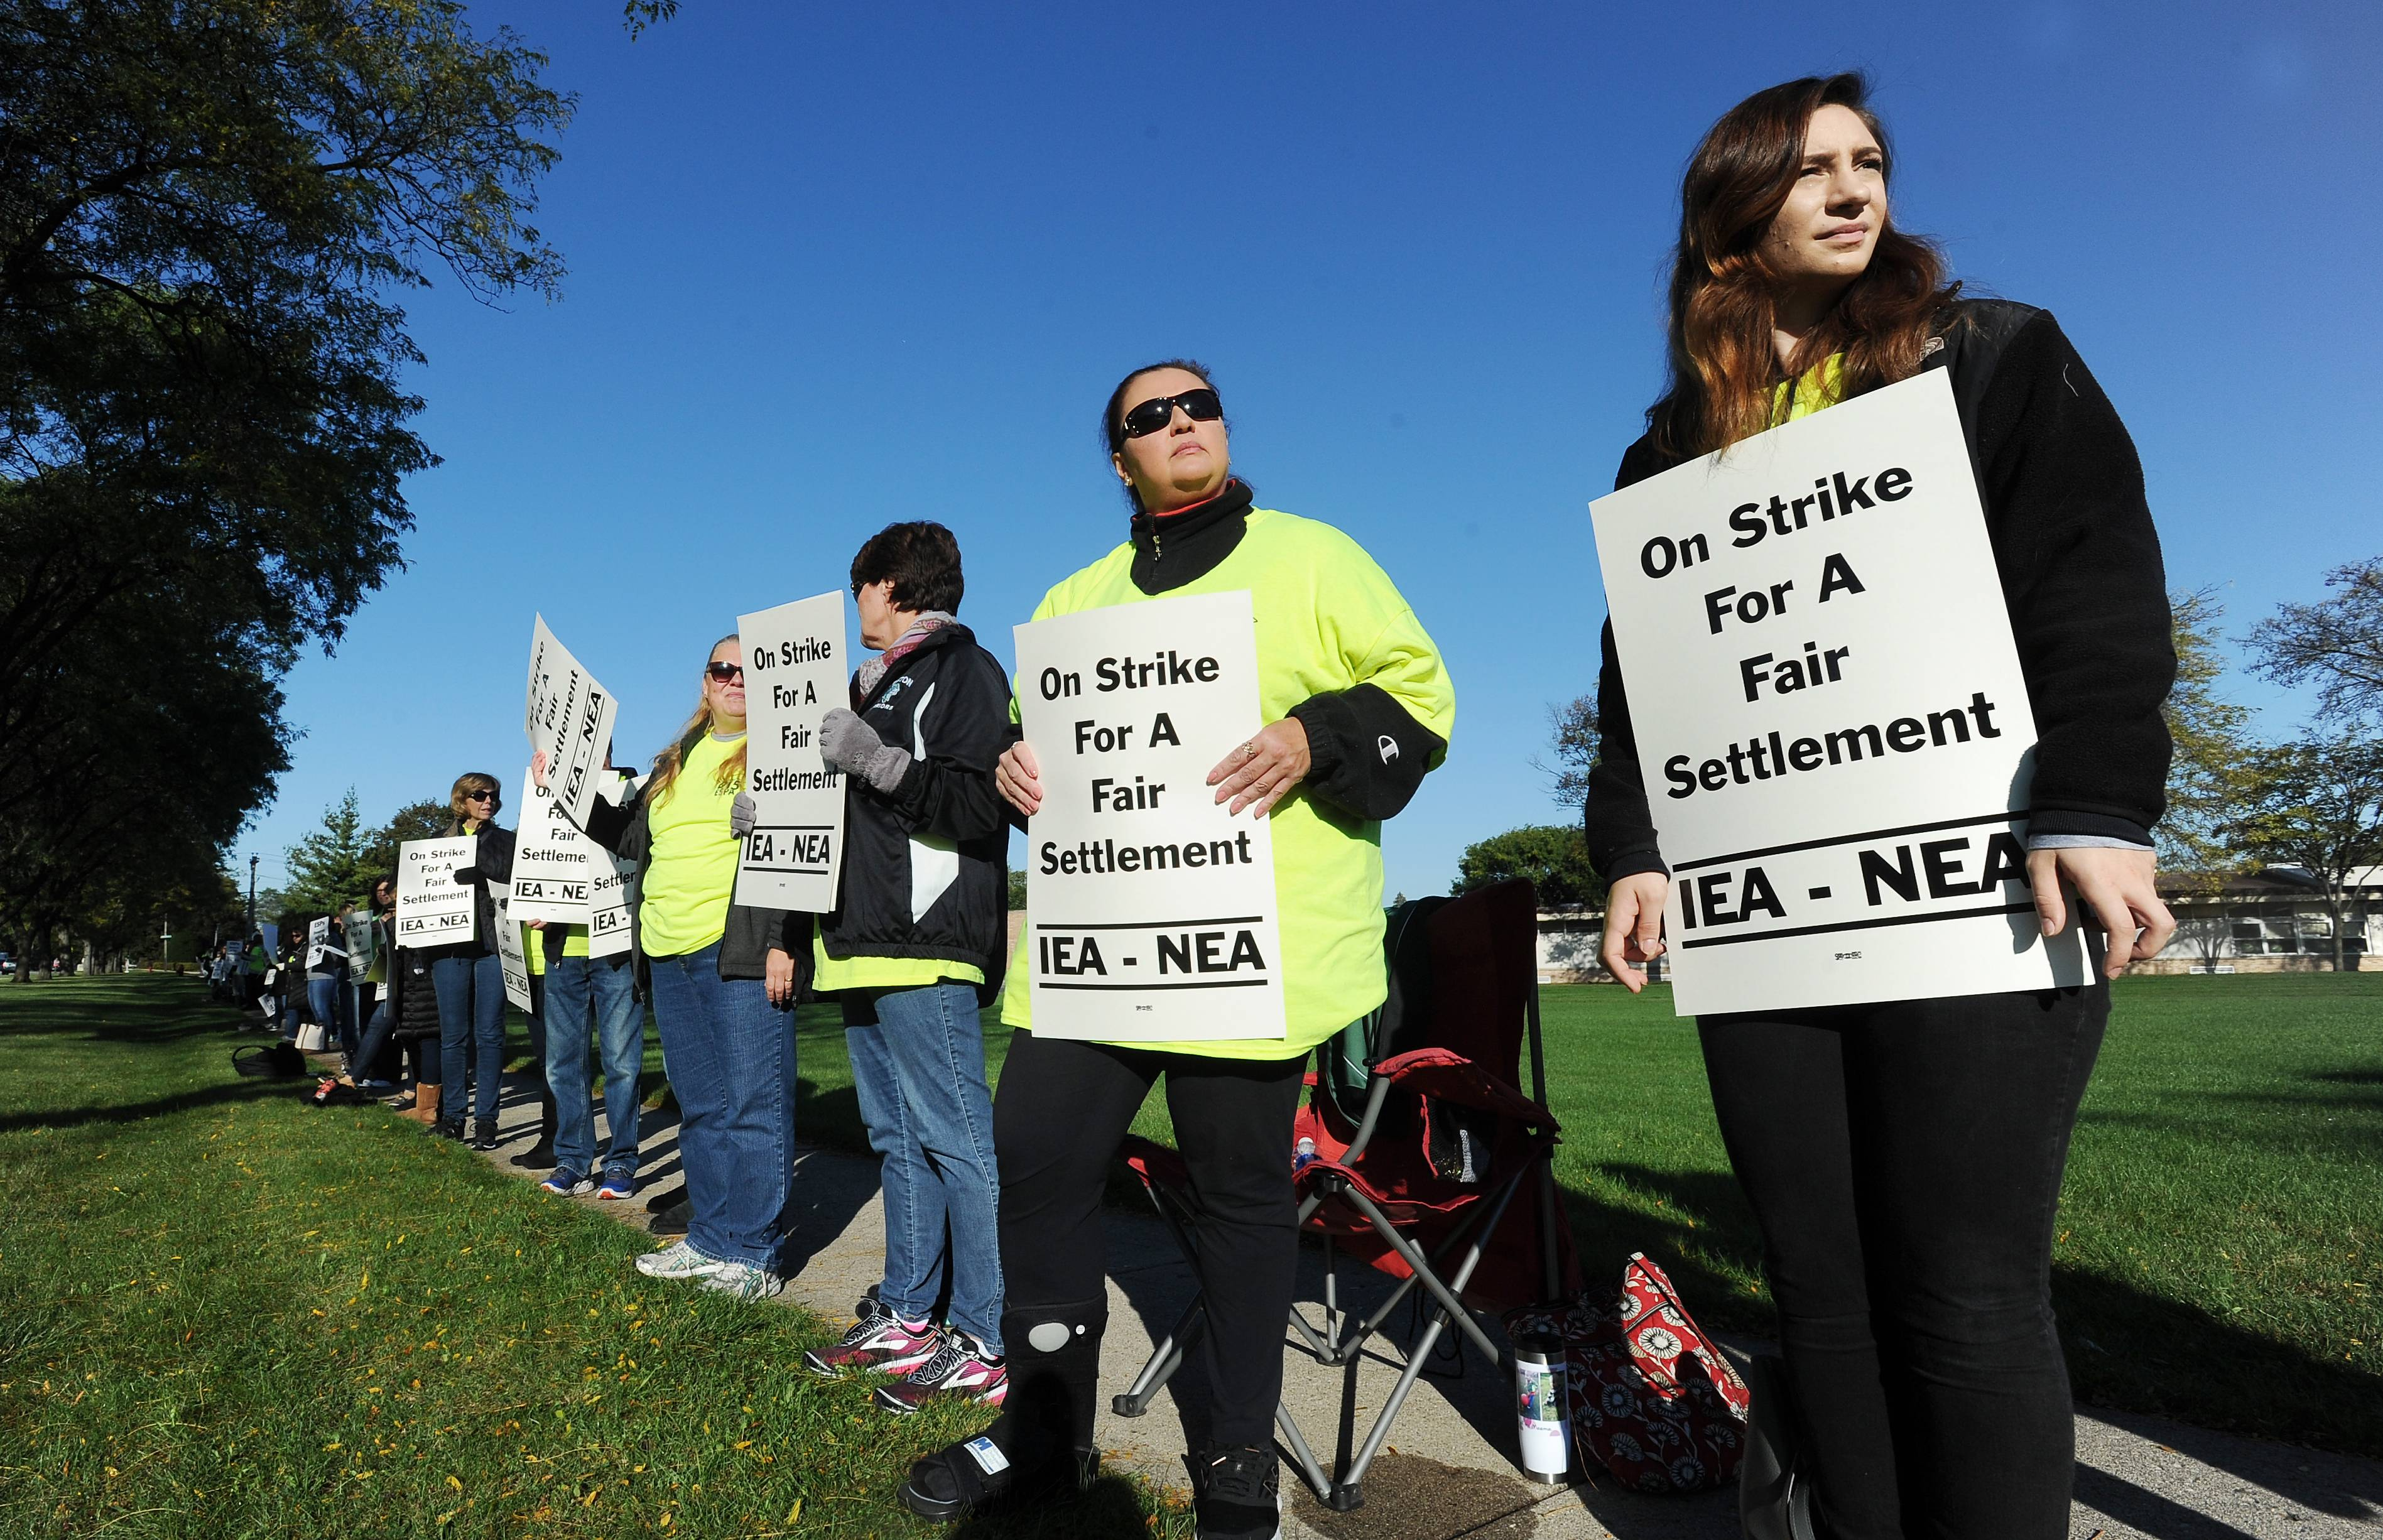 This was the first day of the Palatine Township Elementary District 15 support employees strike Oct. 16 at Winston Campus elementary and junior high schools in the village. While still without a new contract, the employees were back at work Monday.